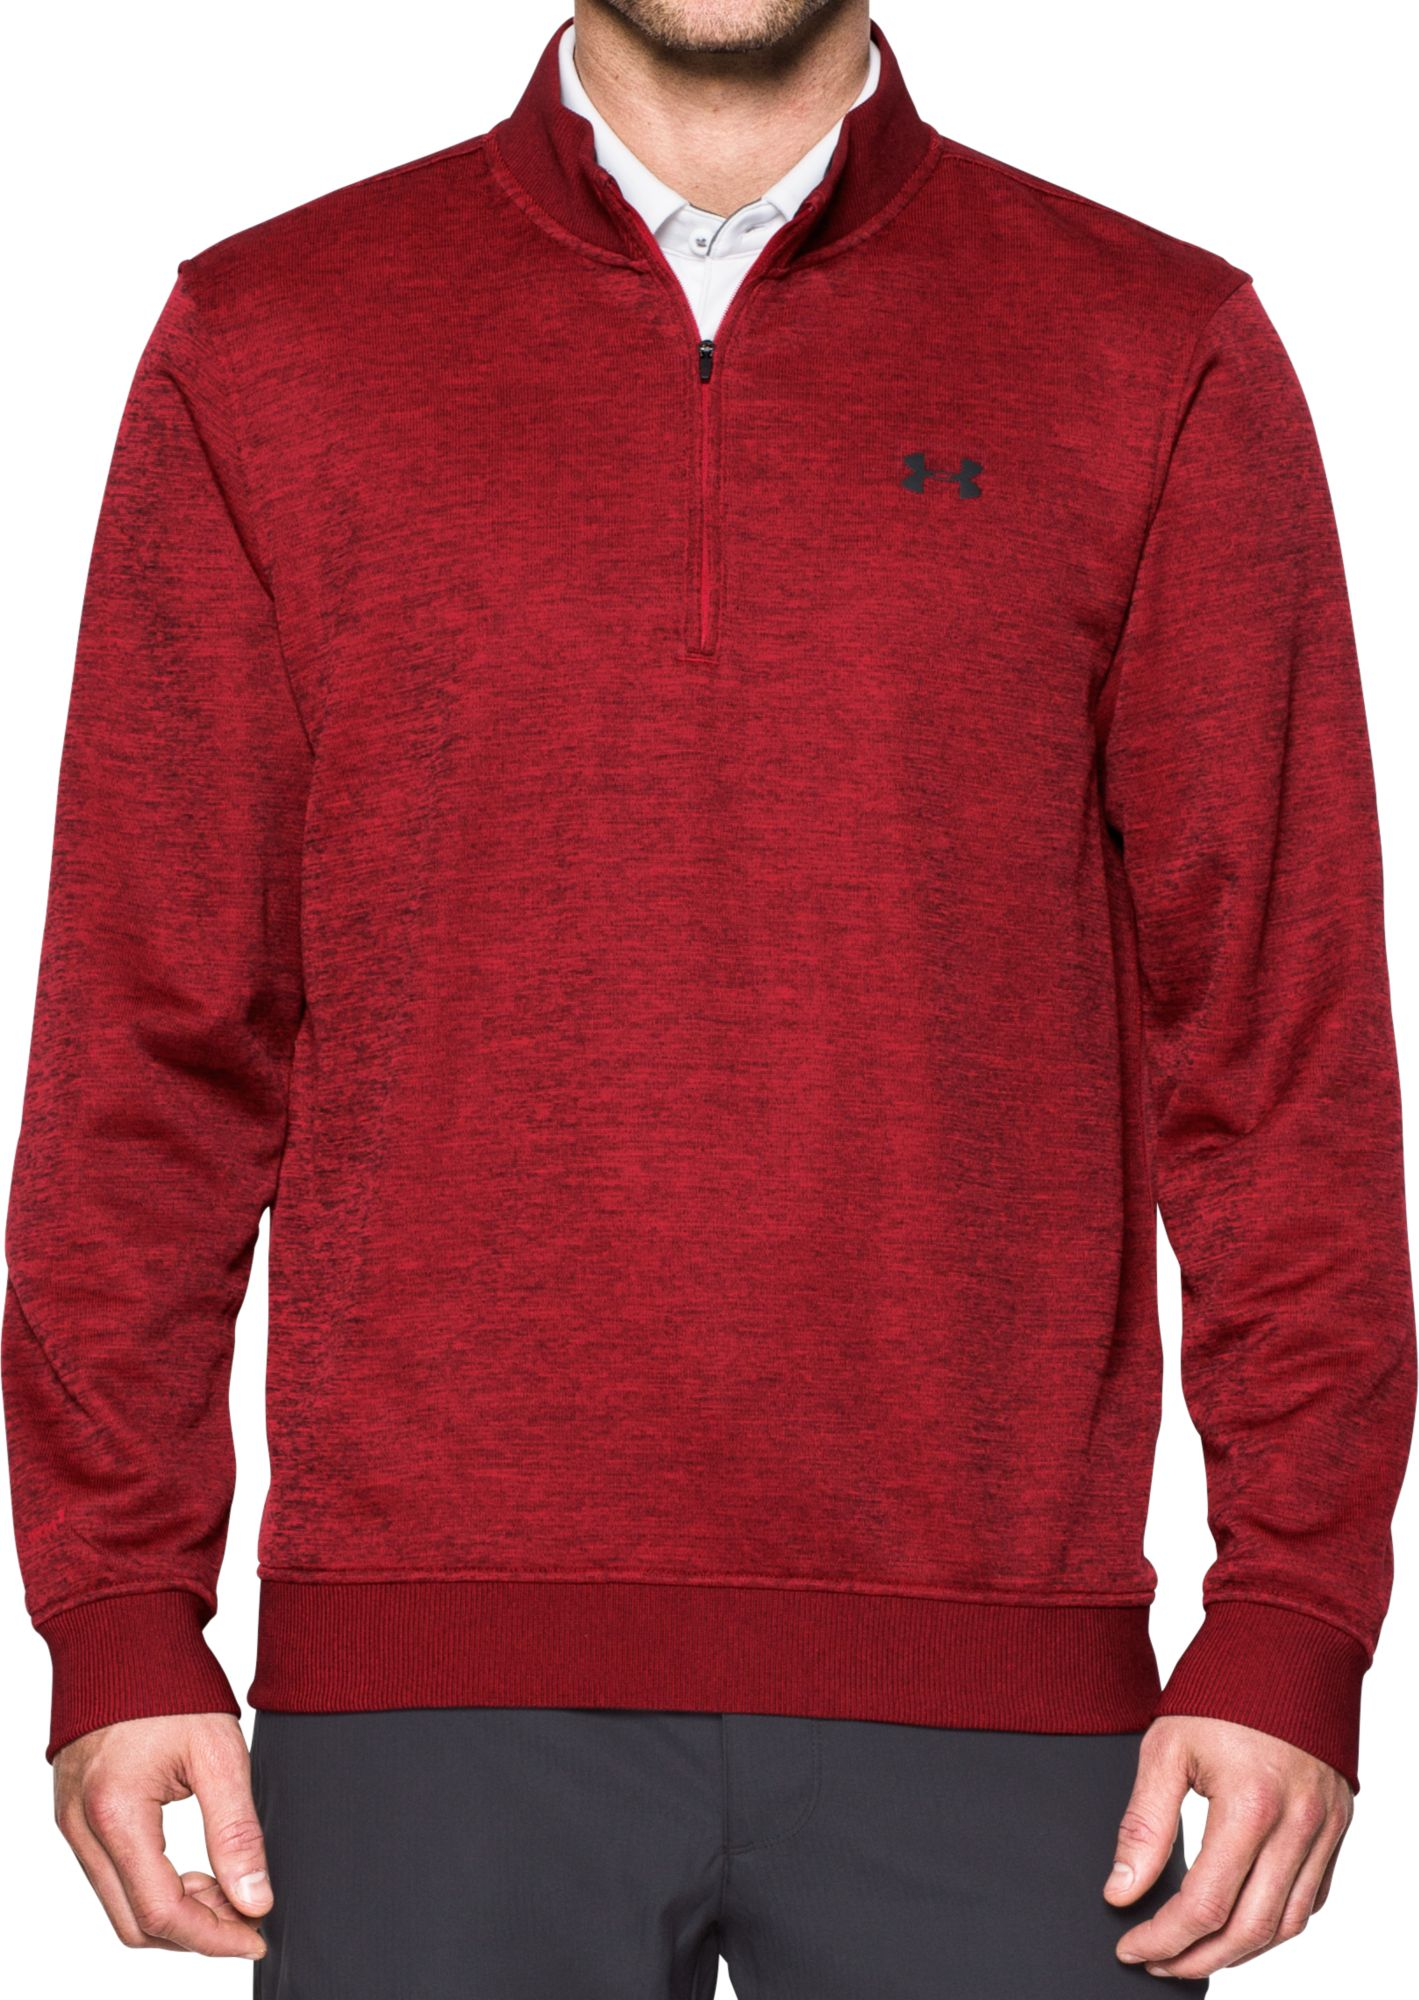 Men's Quarter Zips | DICK'S Sporting Goods